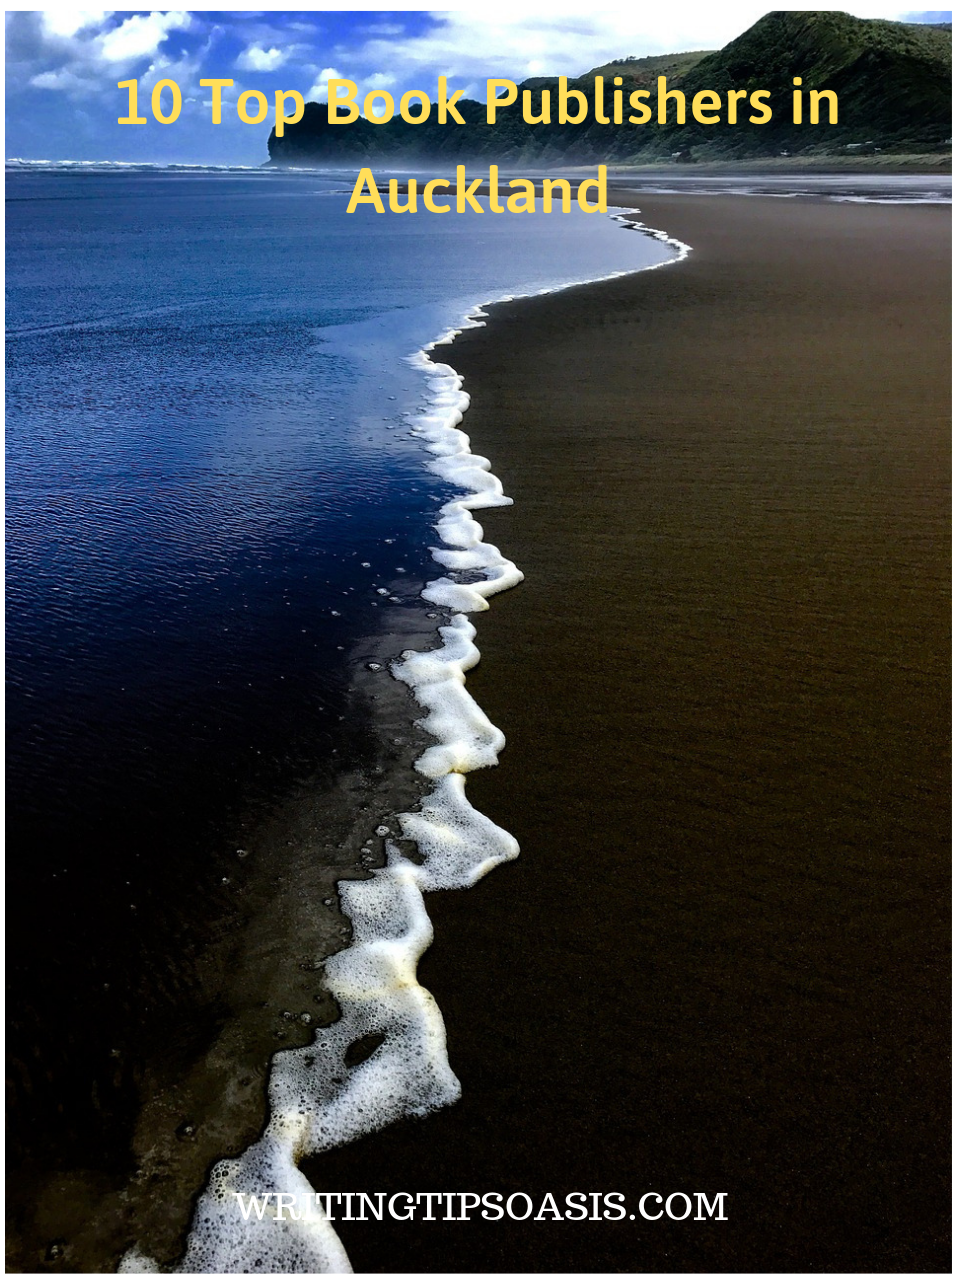 book publishing companies in auckland